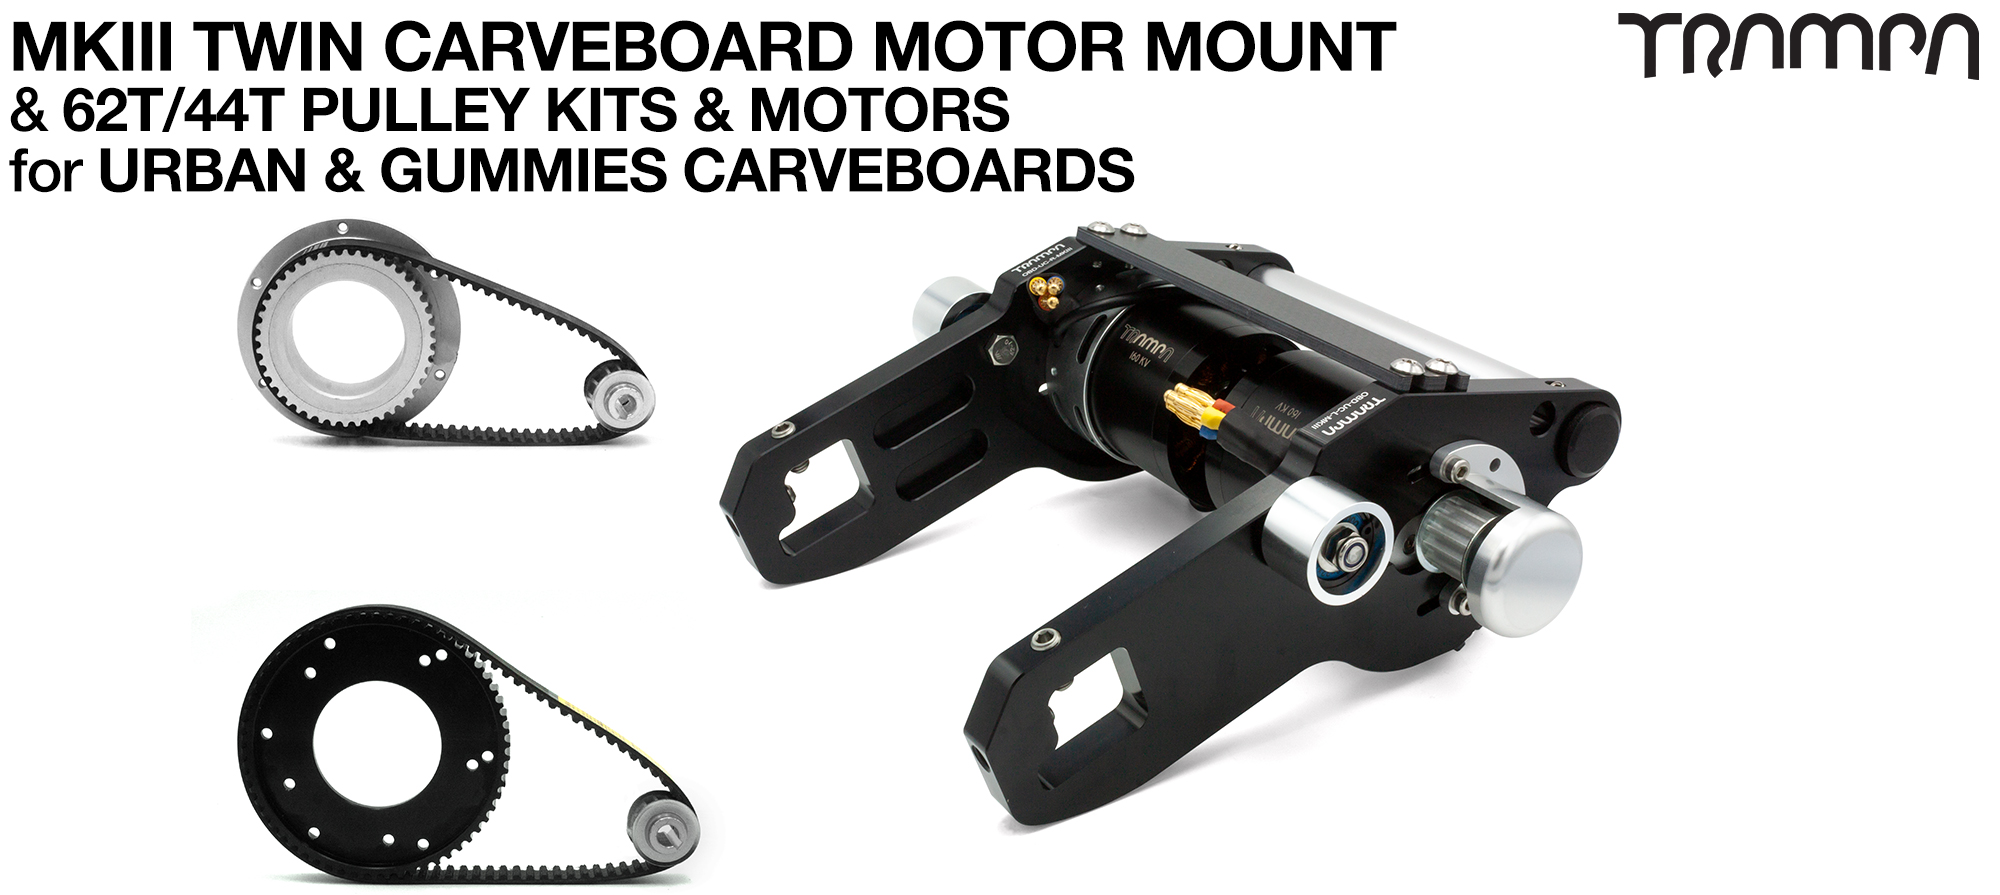 MkIII 2in1 CARVEBOARD Motormount with 44 tooth URBAN & 62 tooth URBAN Pulleys & TRAMPA Motor - TWIN